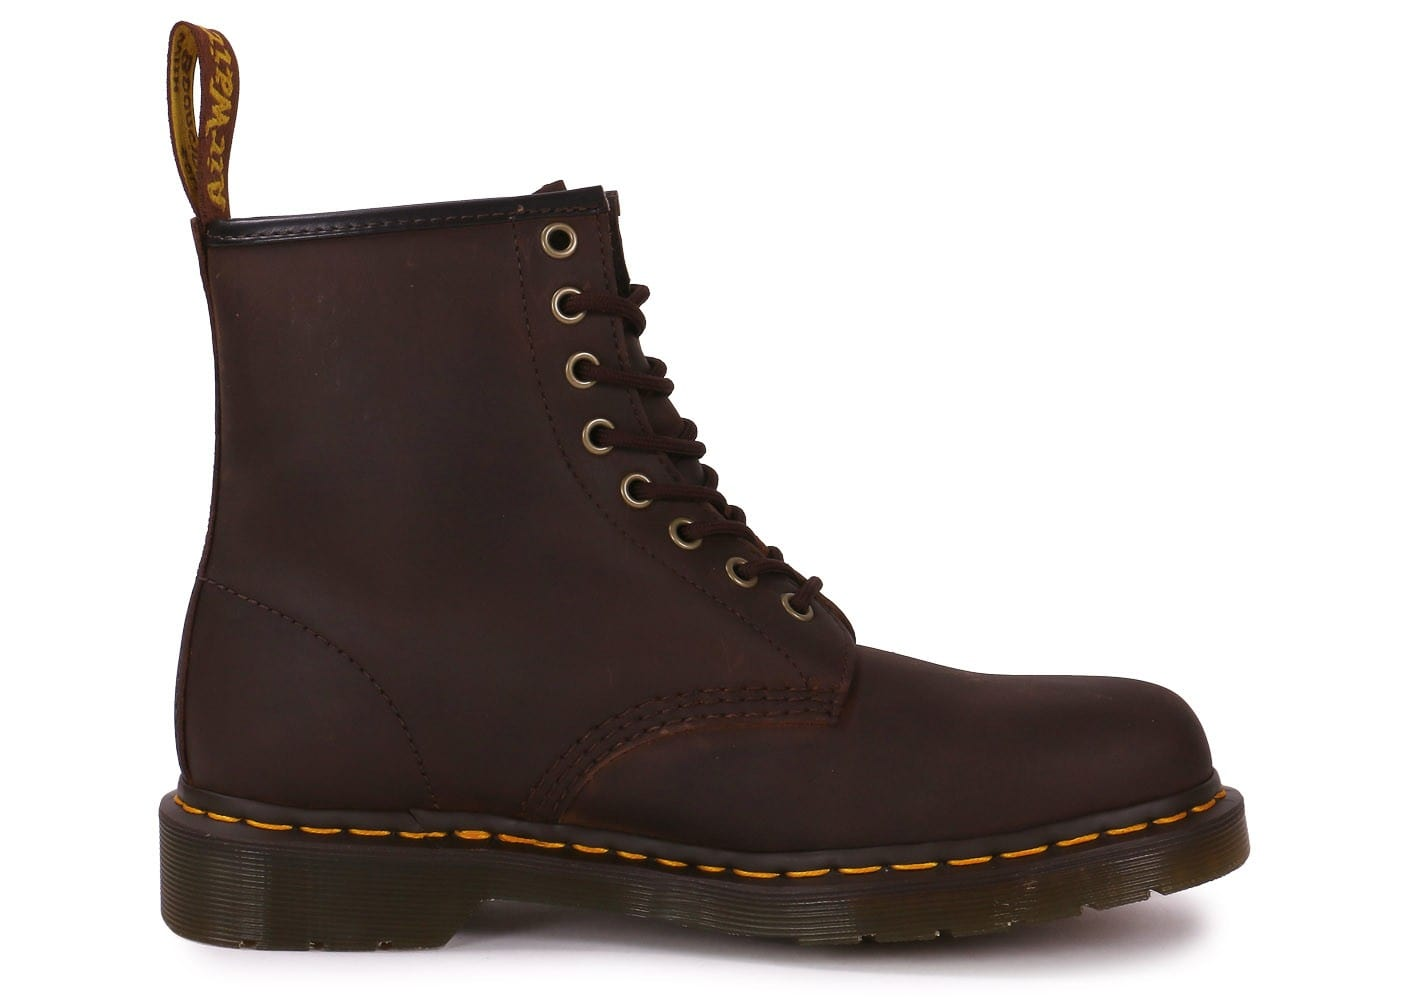 dr martens 1460 crazy horse chaussures homme chausport. Black Bedroom Furniture Sets. Home Design Ideas